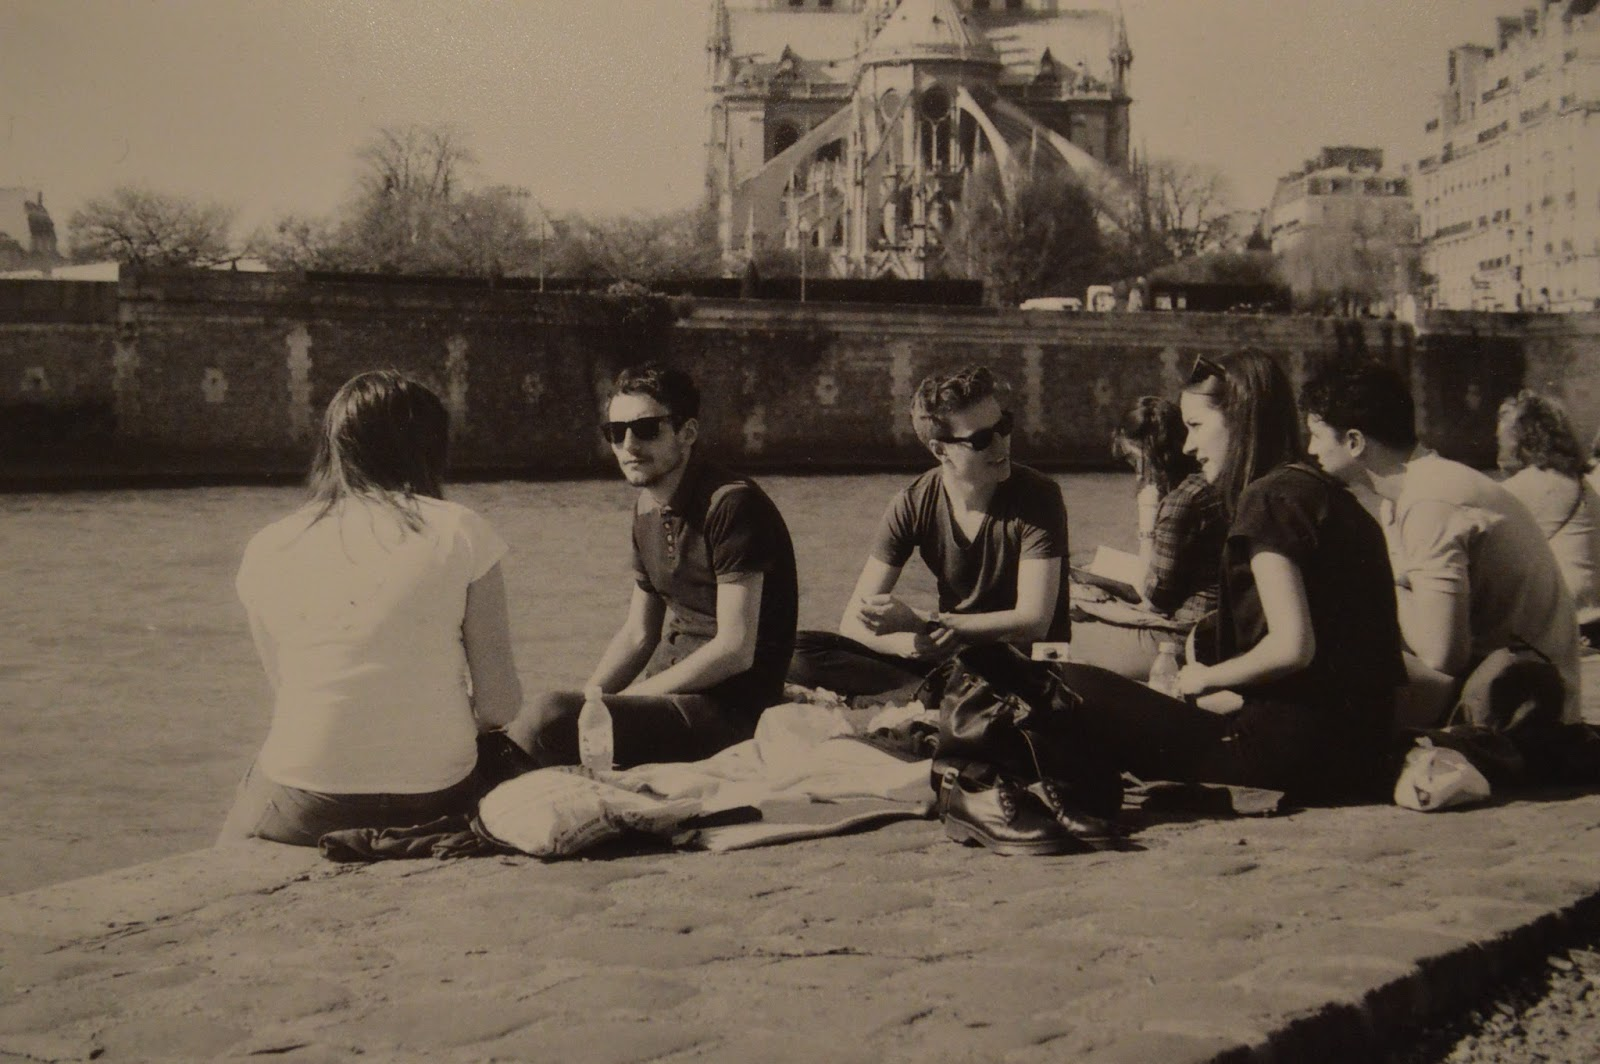 Photography: Friends having a picnic by Notre Dame, Paris